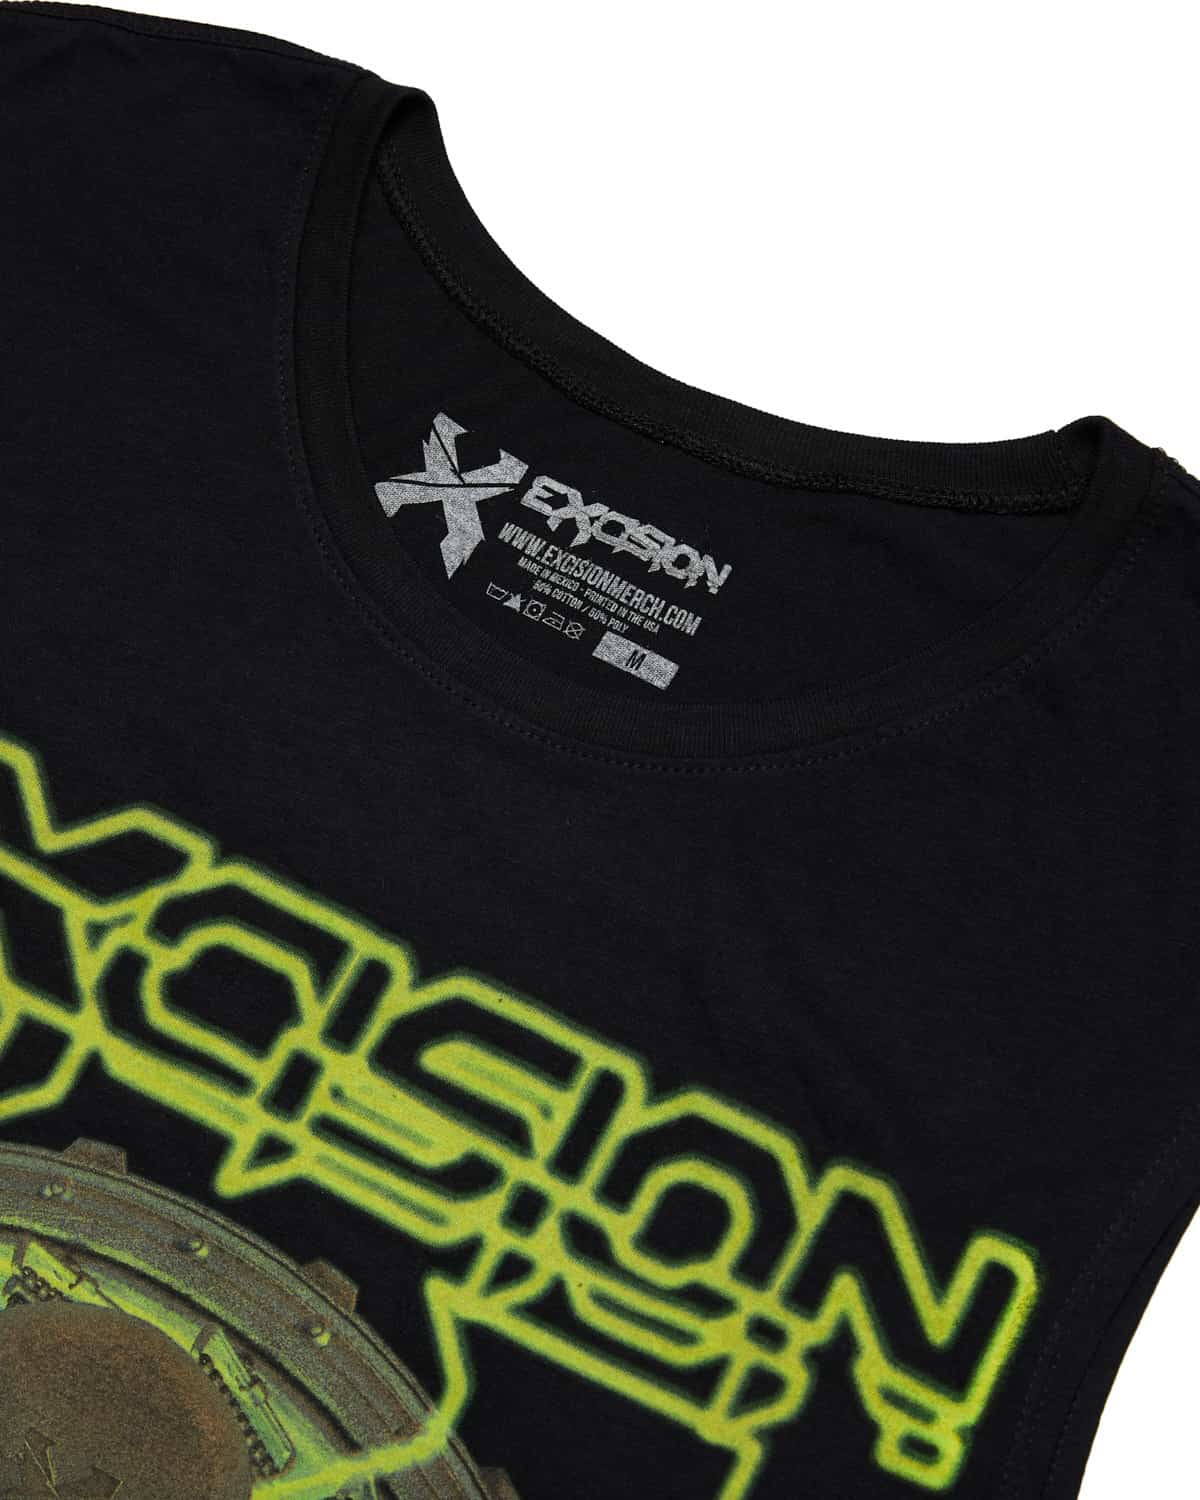 Excision 'Lazer Skull' Unisex Sleeveless T-Shirt - Green